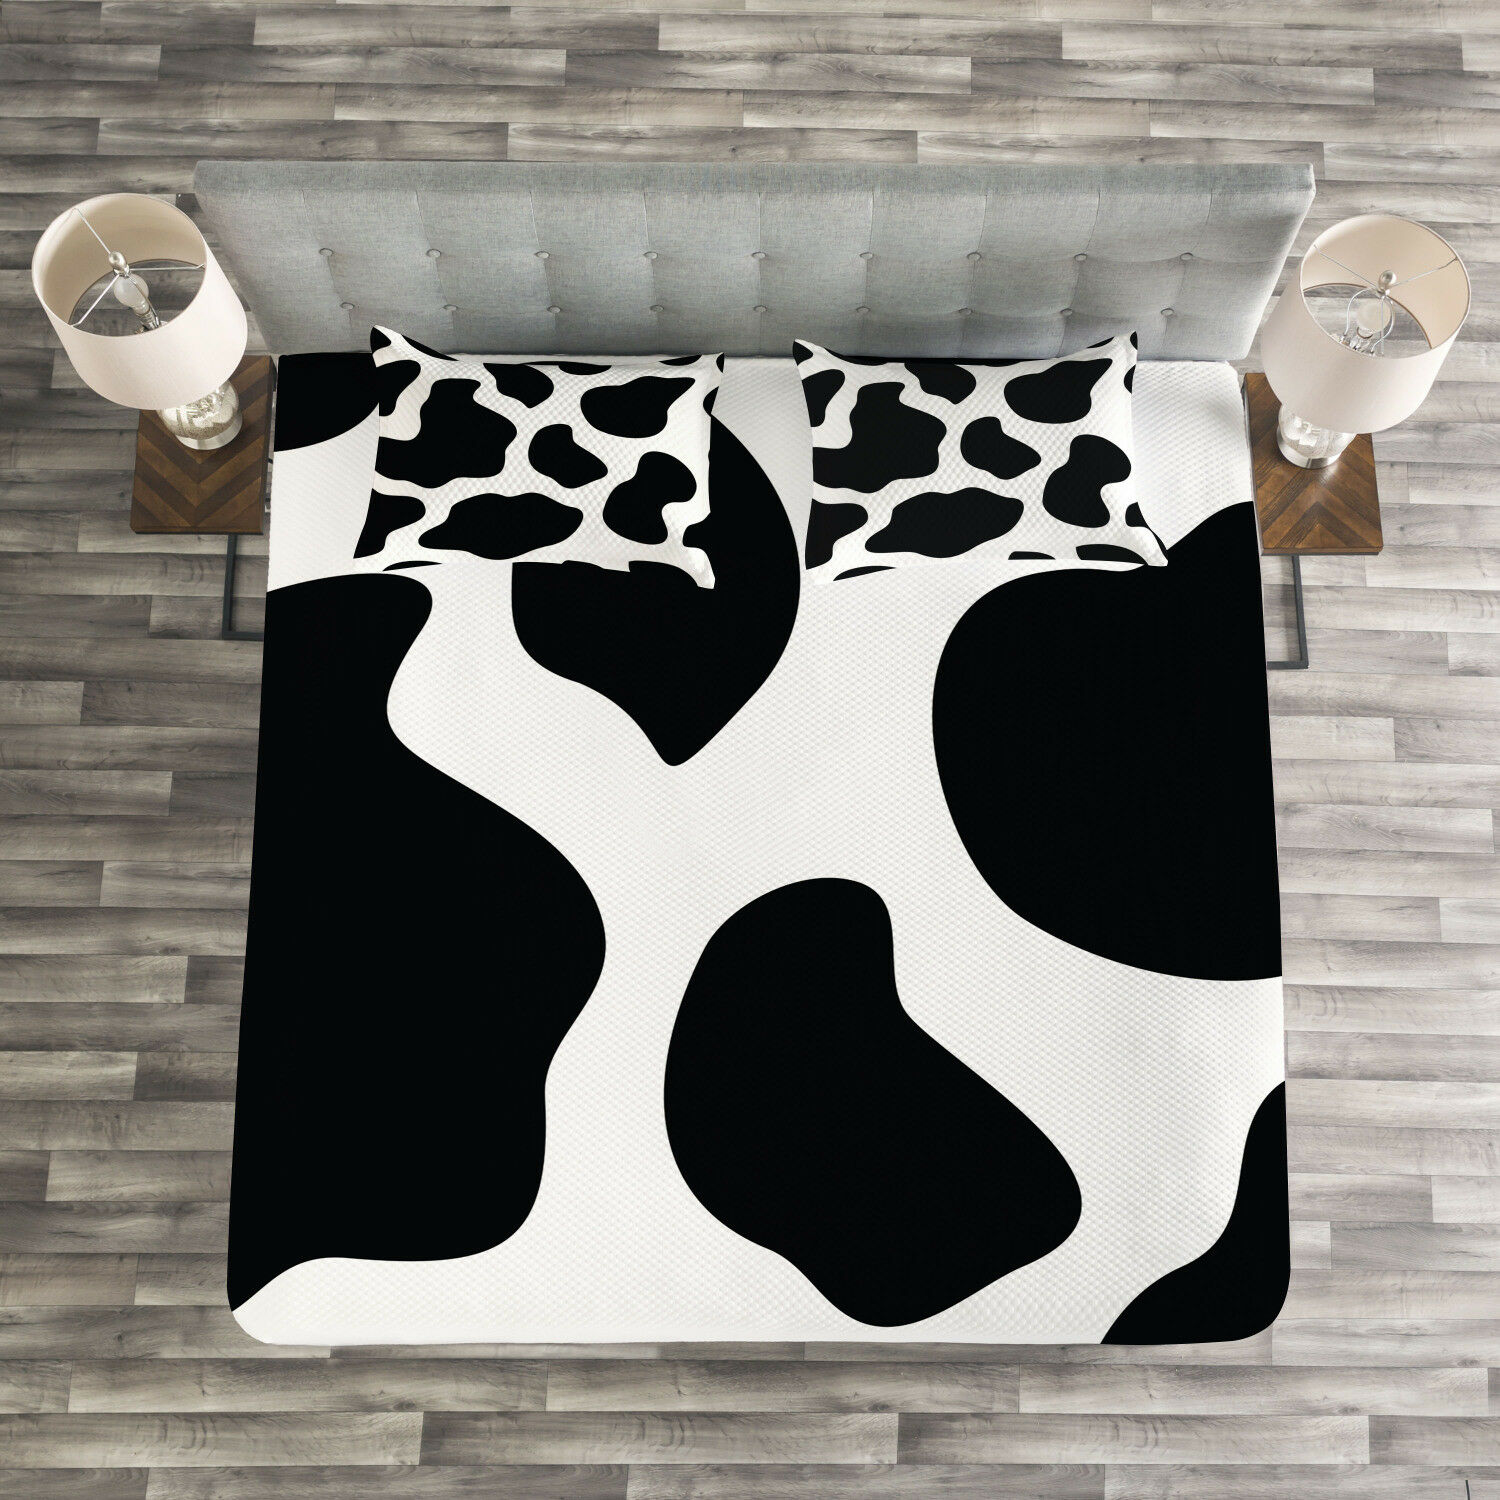 Cow Print Quilted Bedspread & Pillow Shams Set, White Cow Hide Barn Print